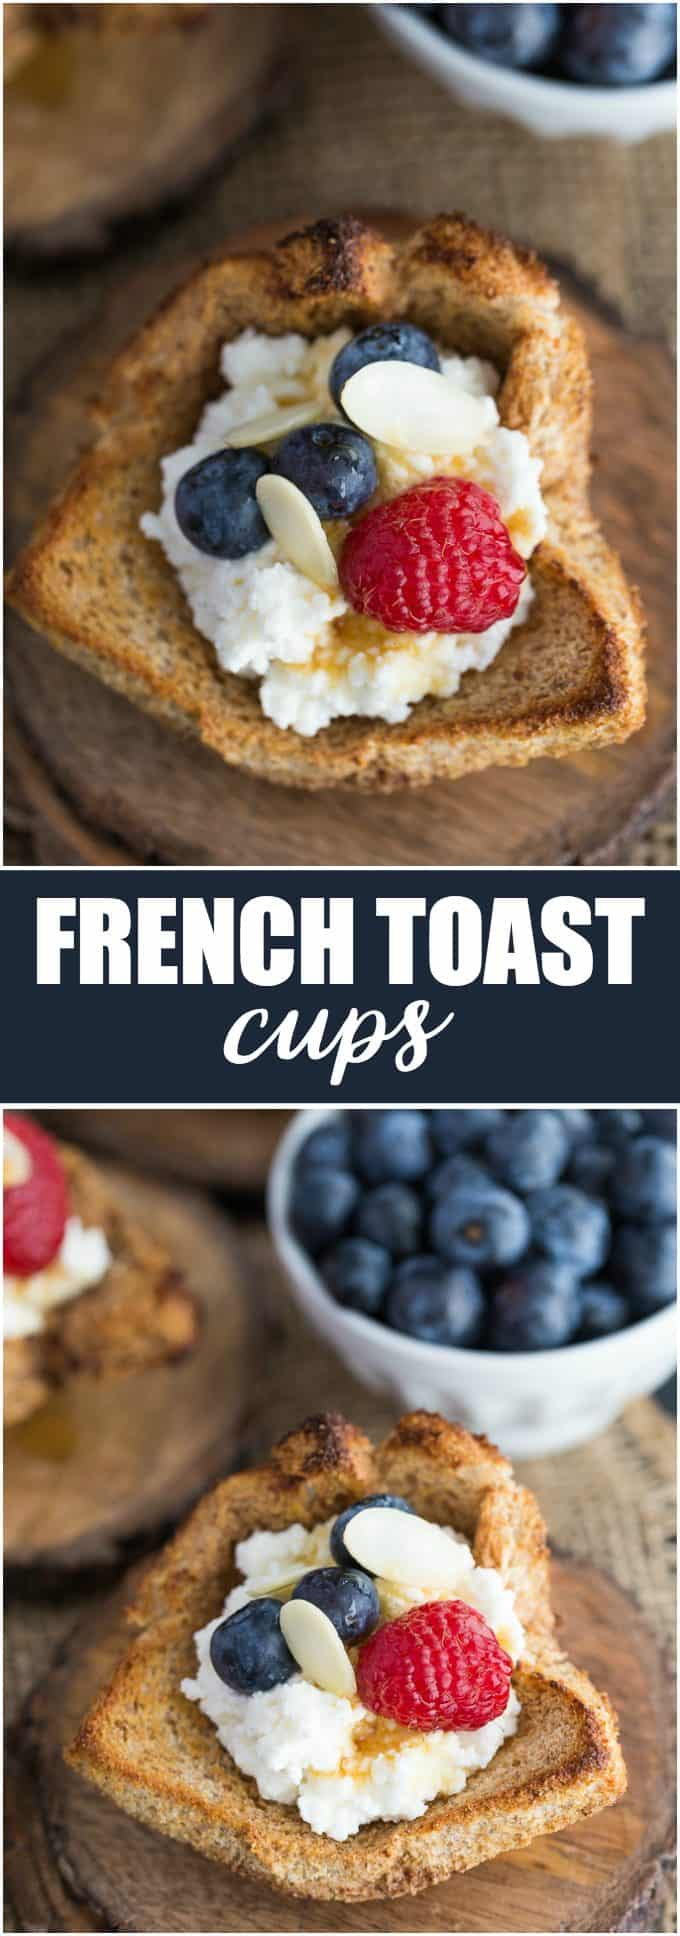 French Toast Cups - Easy to make and delicious to eat for breakfast!